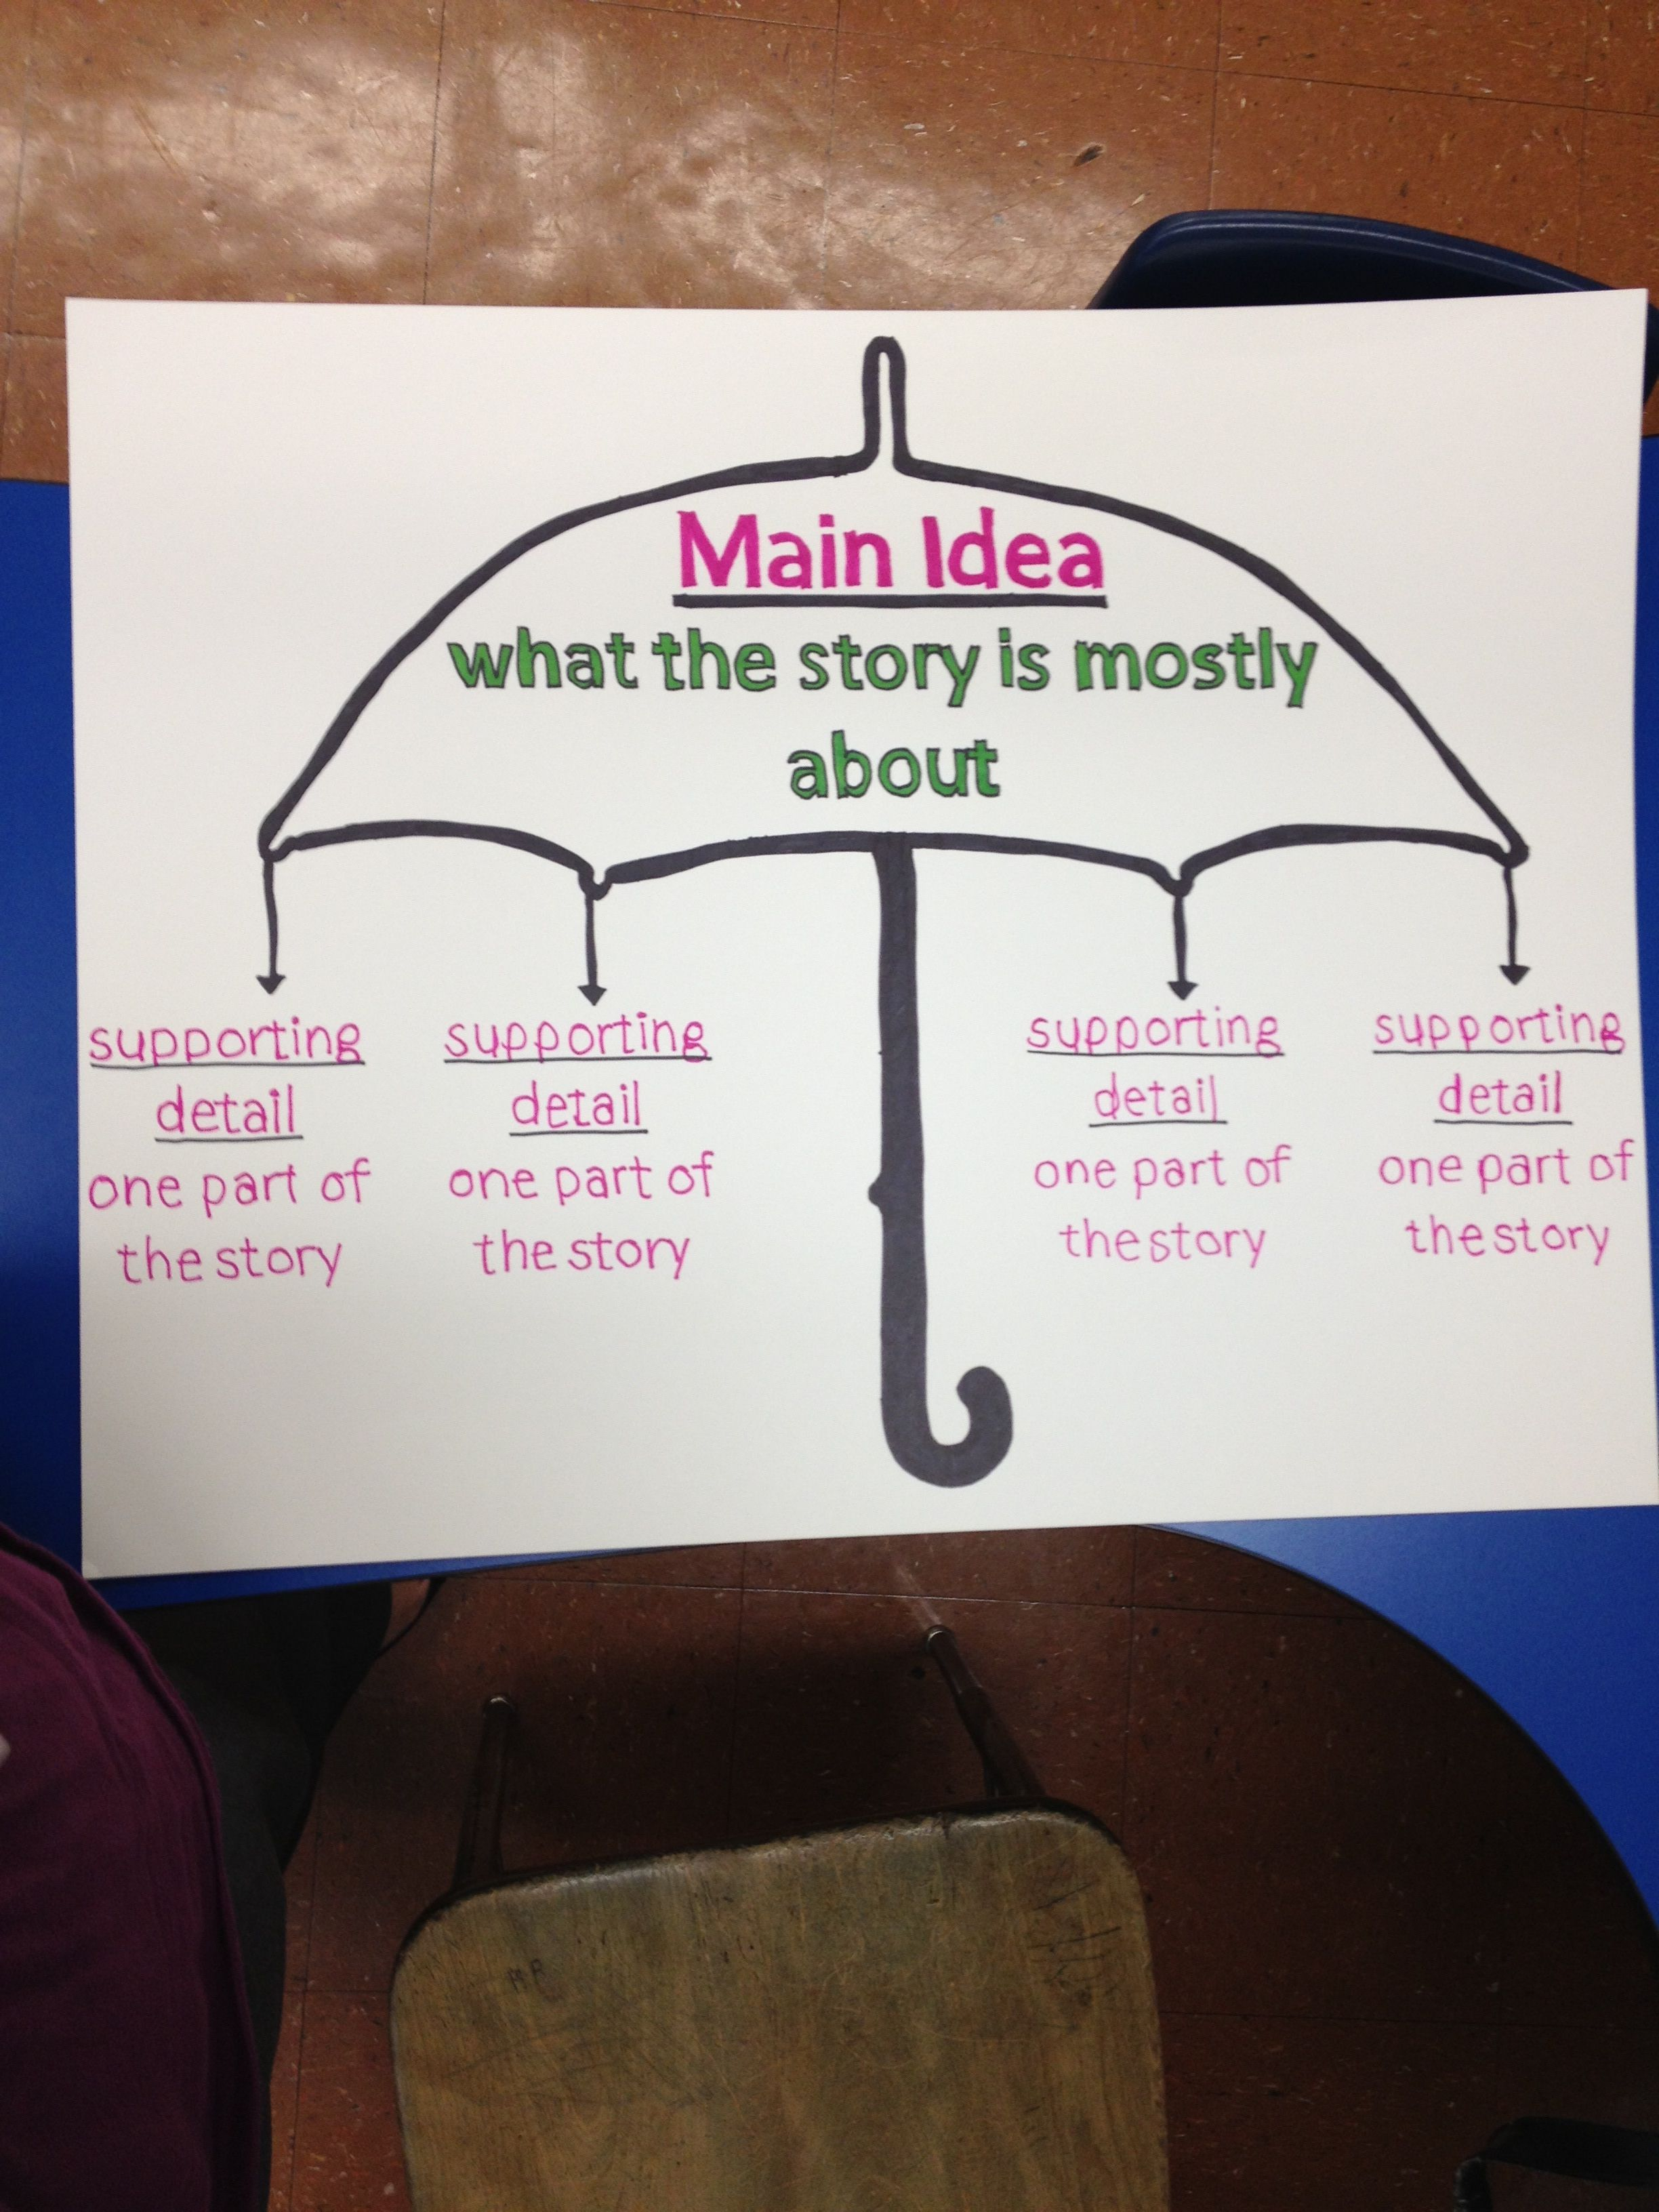 Main Idea Anchor Chart Could Be Modified For Main Topic